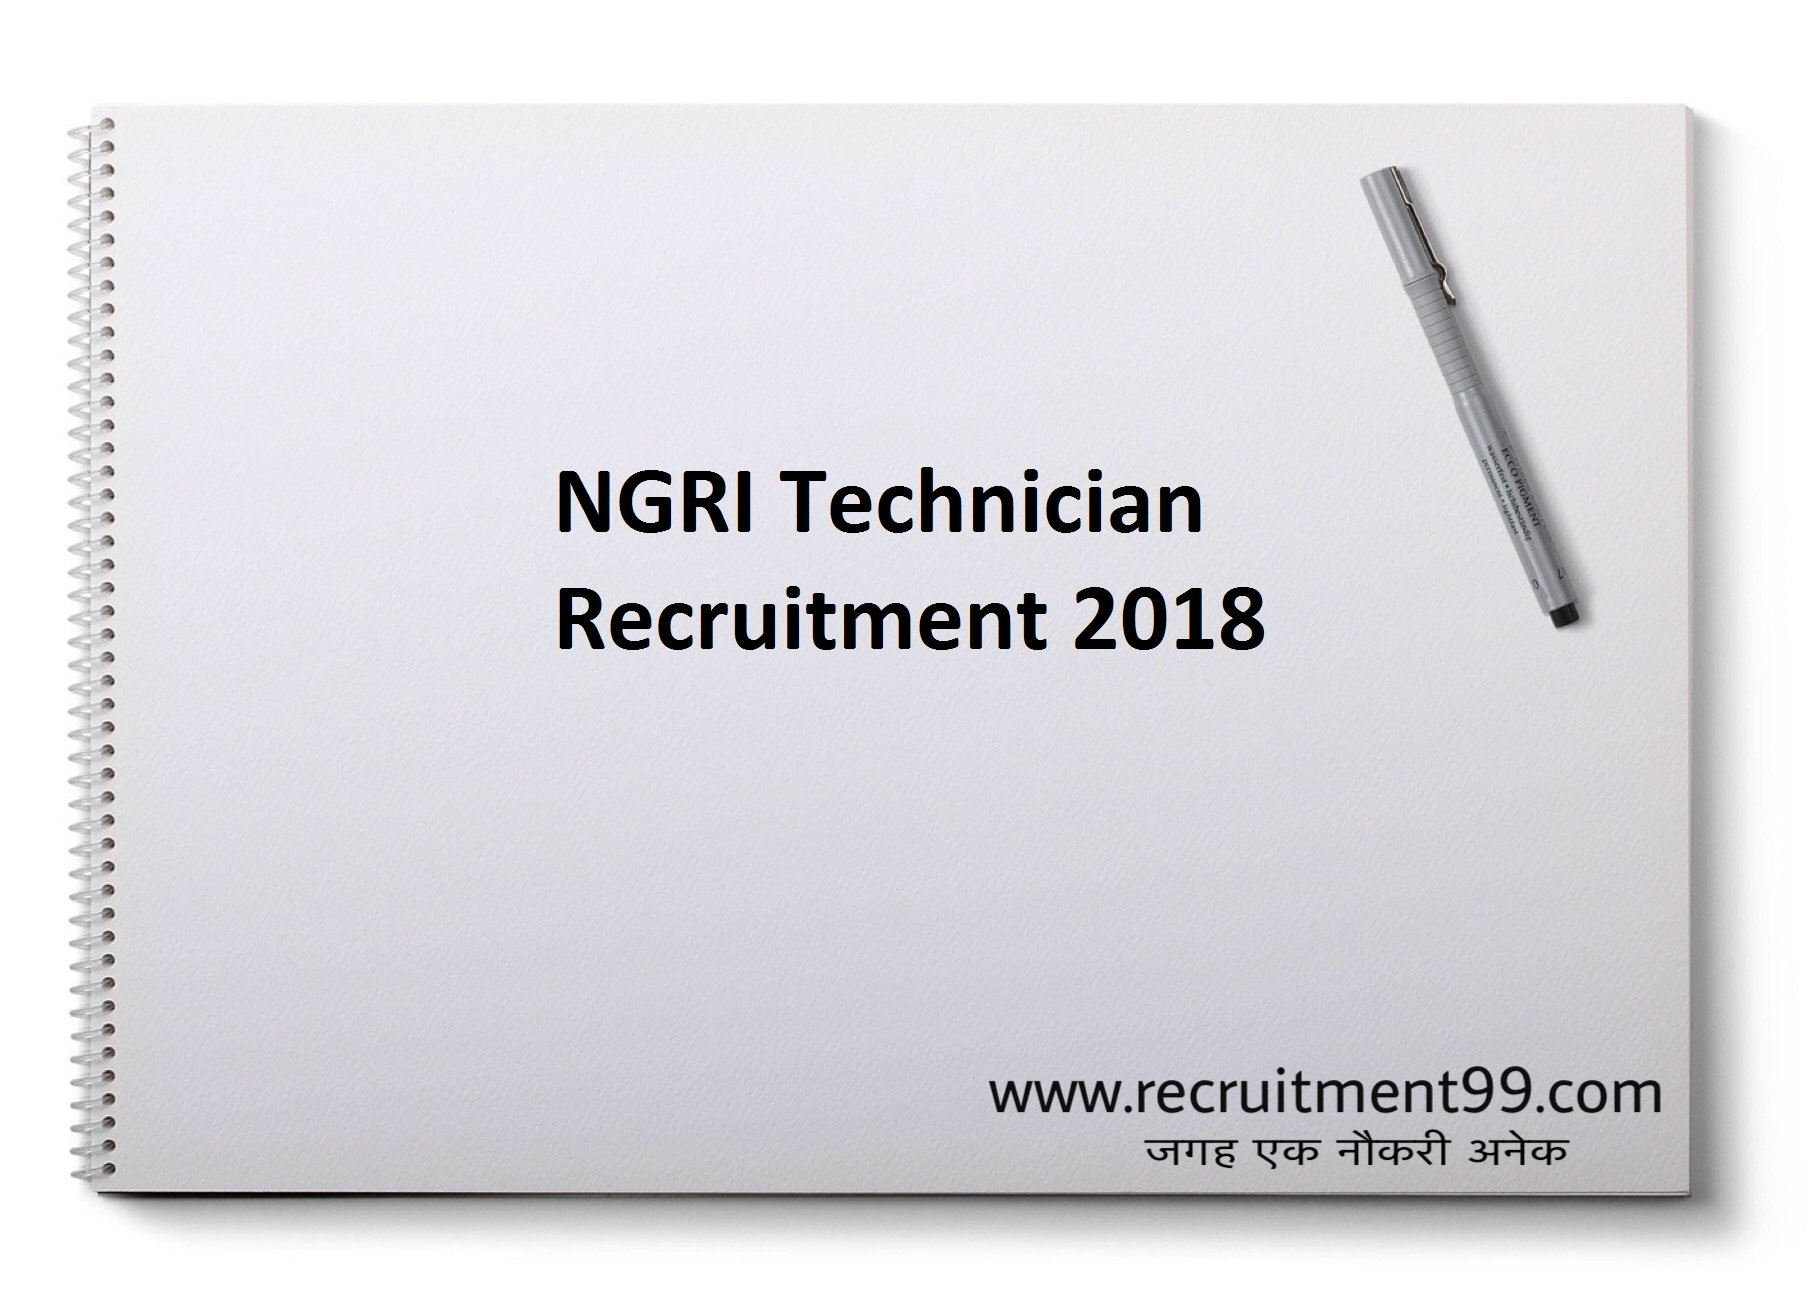 NGRI Technician Recruitment Admit Card Result 2018